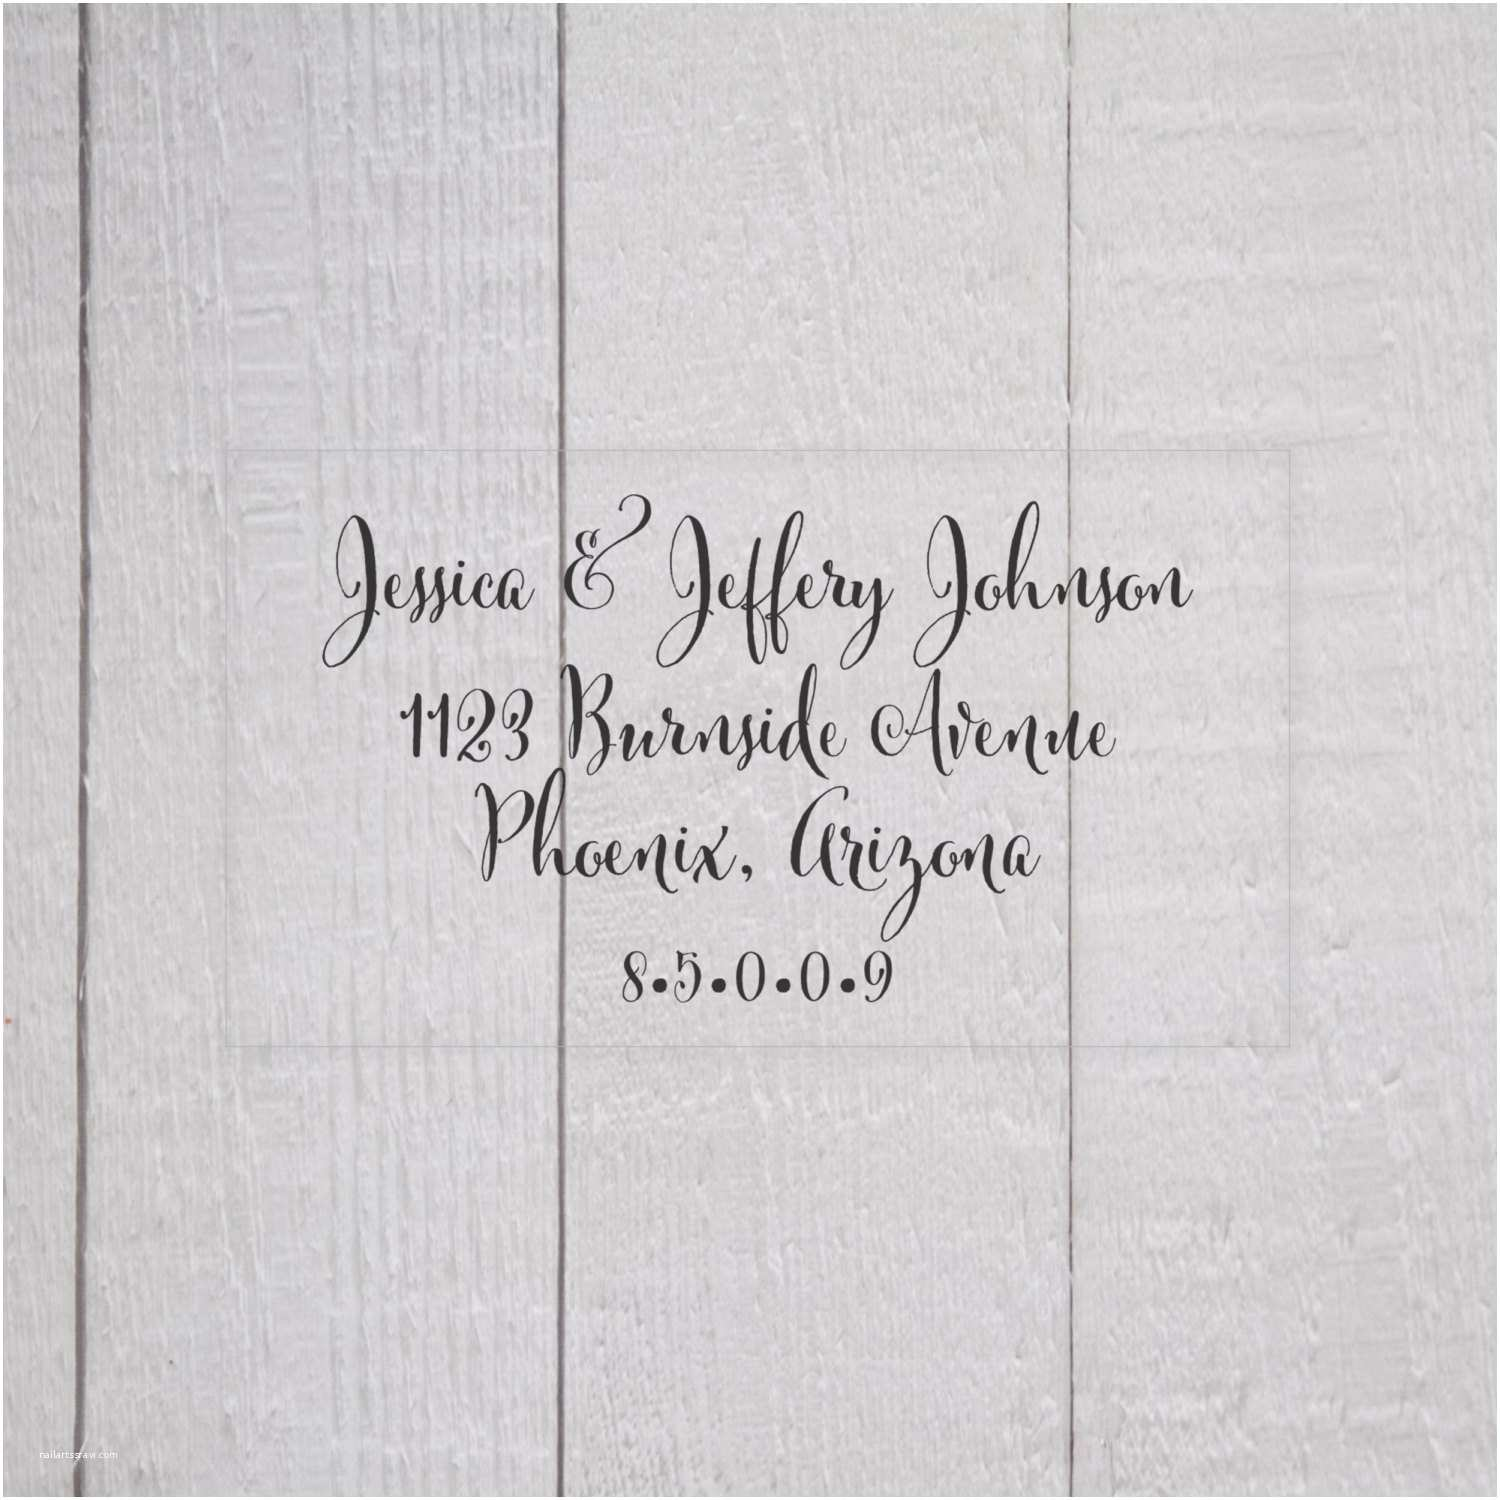 Clear Address Labels for Wedding Invitations Wedding Invitation Return Address Labels Clear Wedding